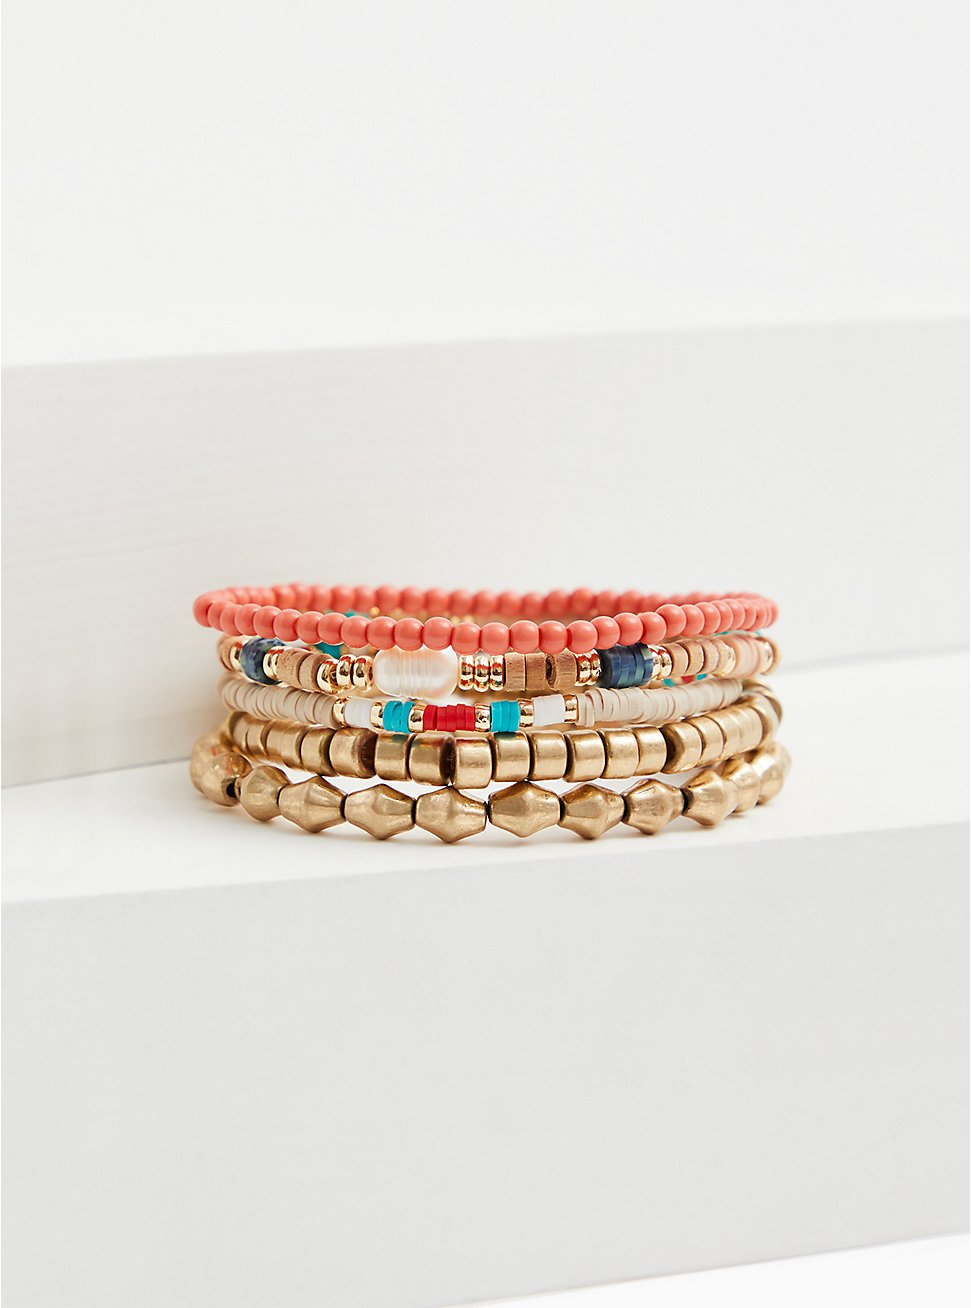 Gold-Tone & Multi Bead Stretch Bracelet Set - Set of 5, CORAL, hi-res